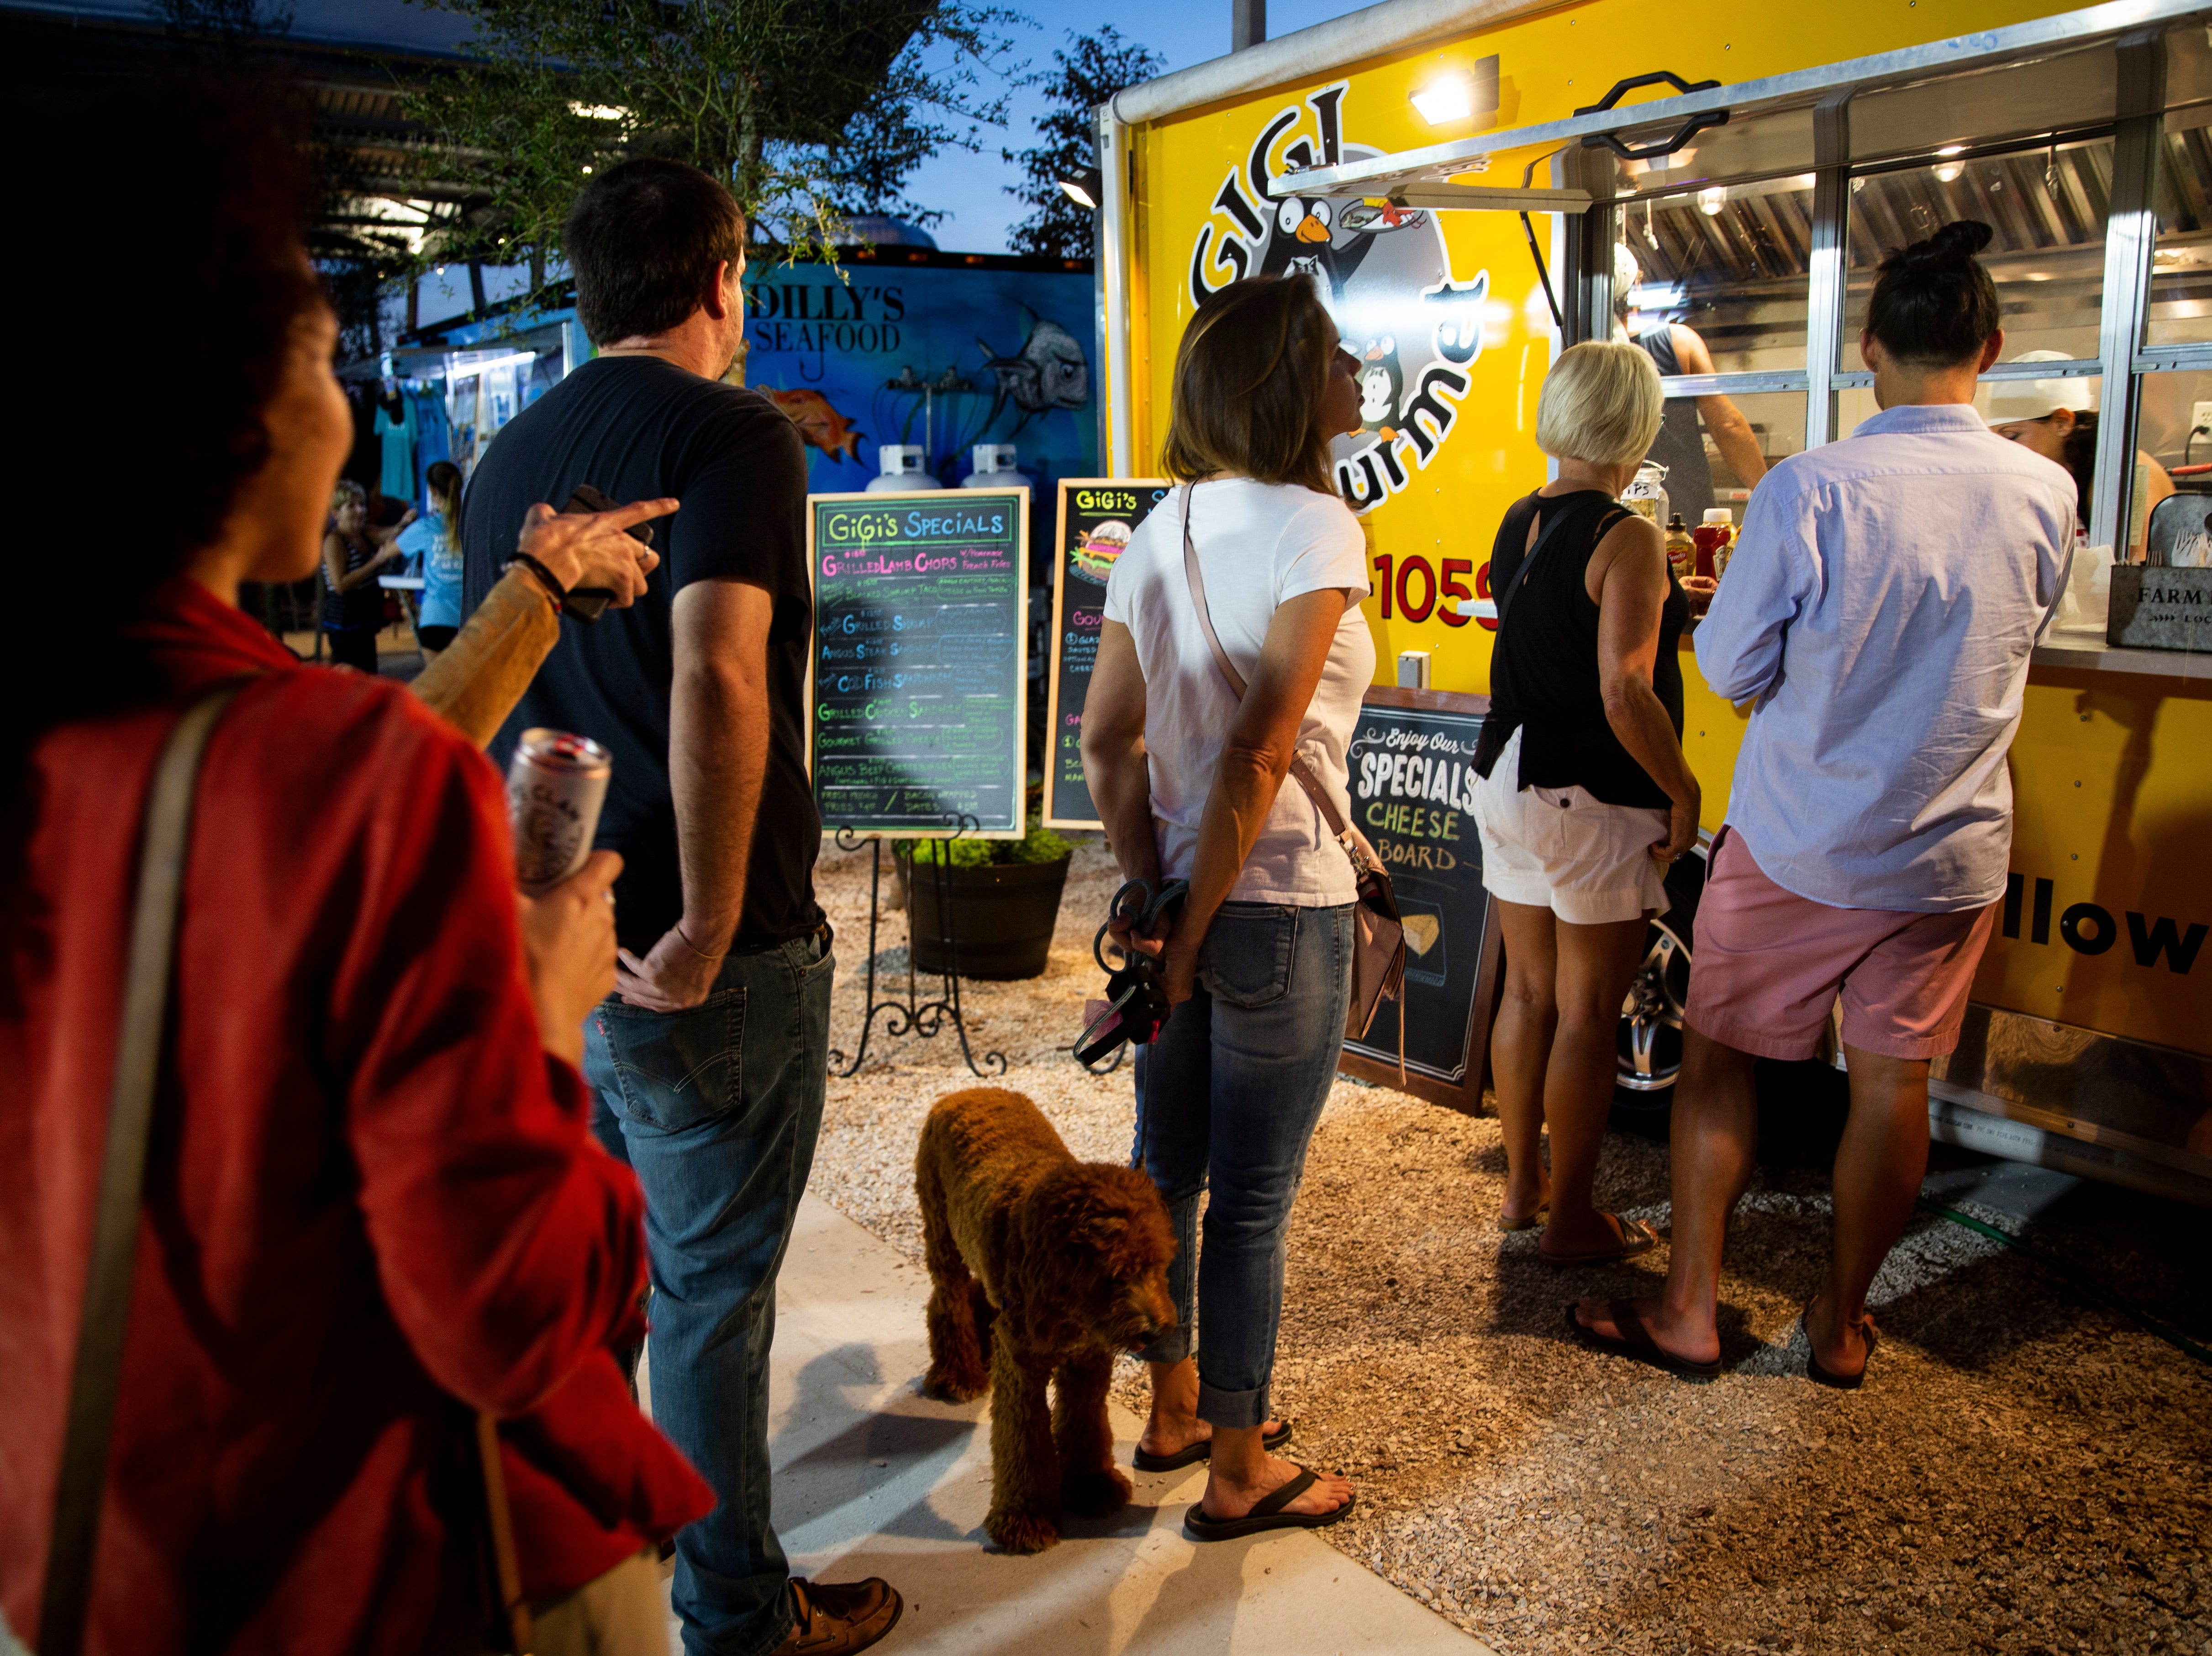 Customers wait in line to order food from Gigi Gourmet on Sunday, Nov. 25, 2018, at Celebration Park in the Bayshore area of East Naples.